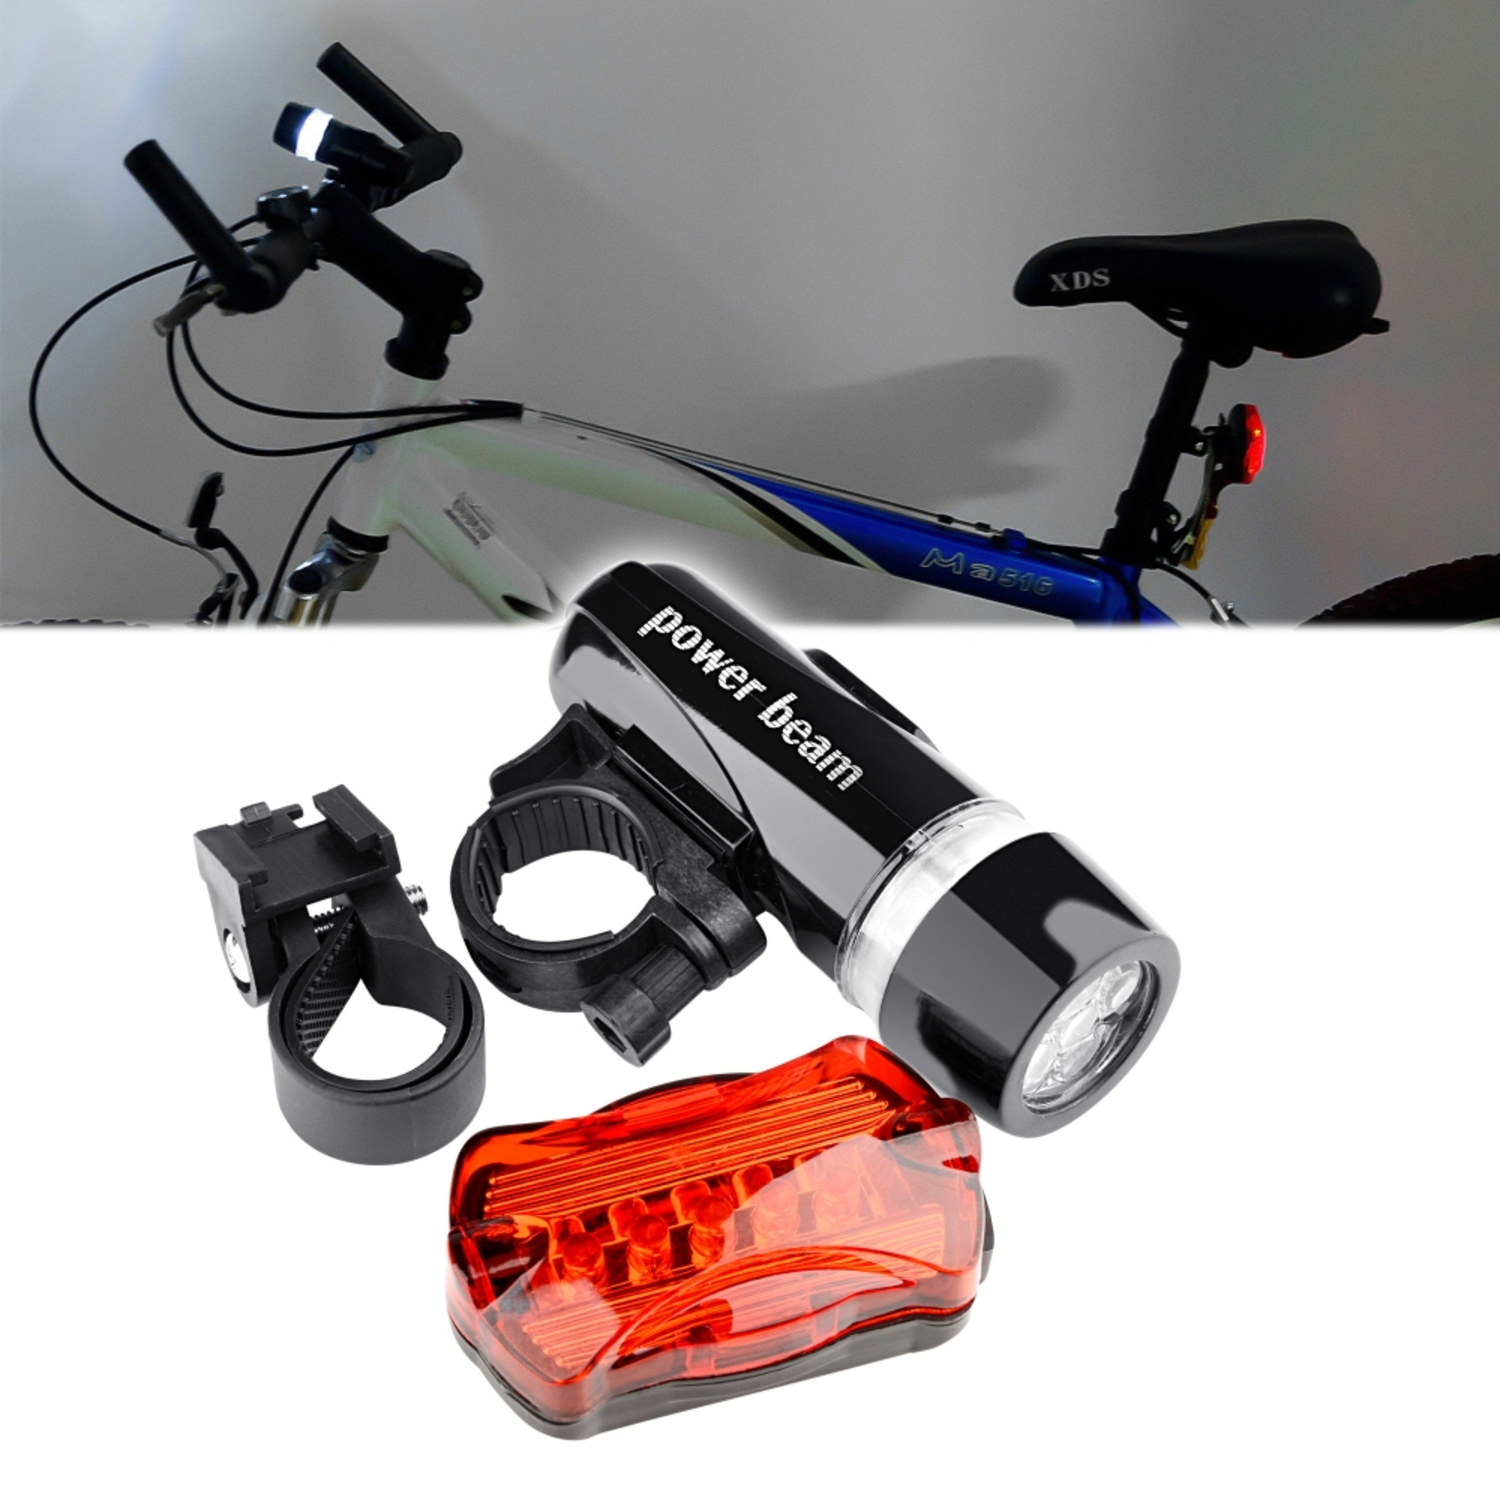 Insten Bike Bicycle Front Head Headlight and Tail Flahlight Set (Rear Lamp contains 5 LED light Multi-Modes Signal)